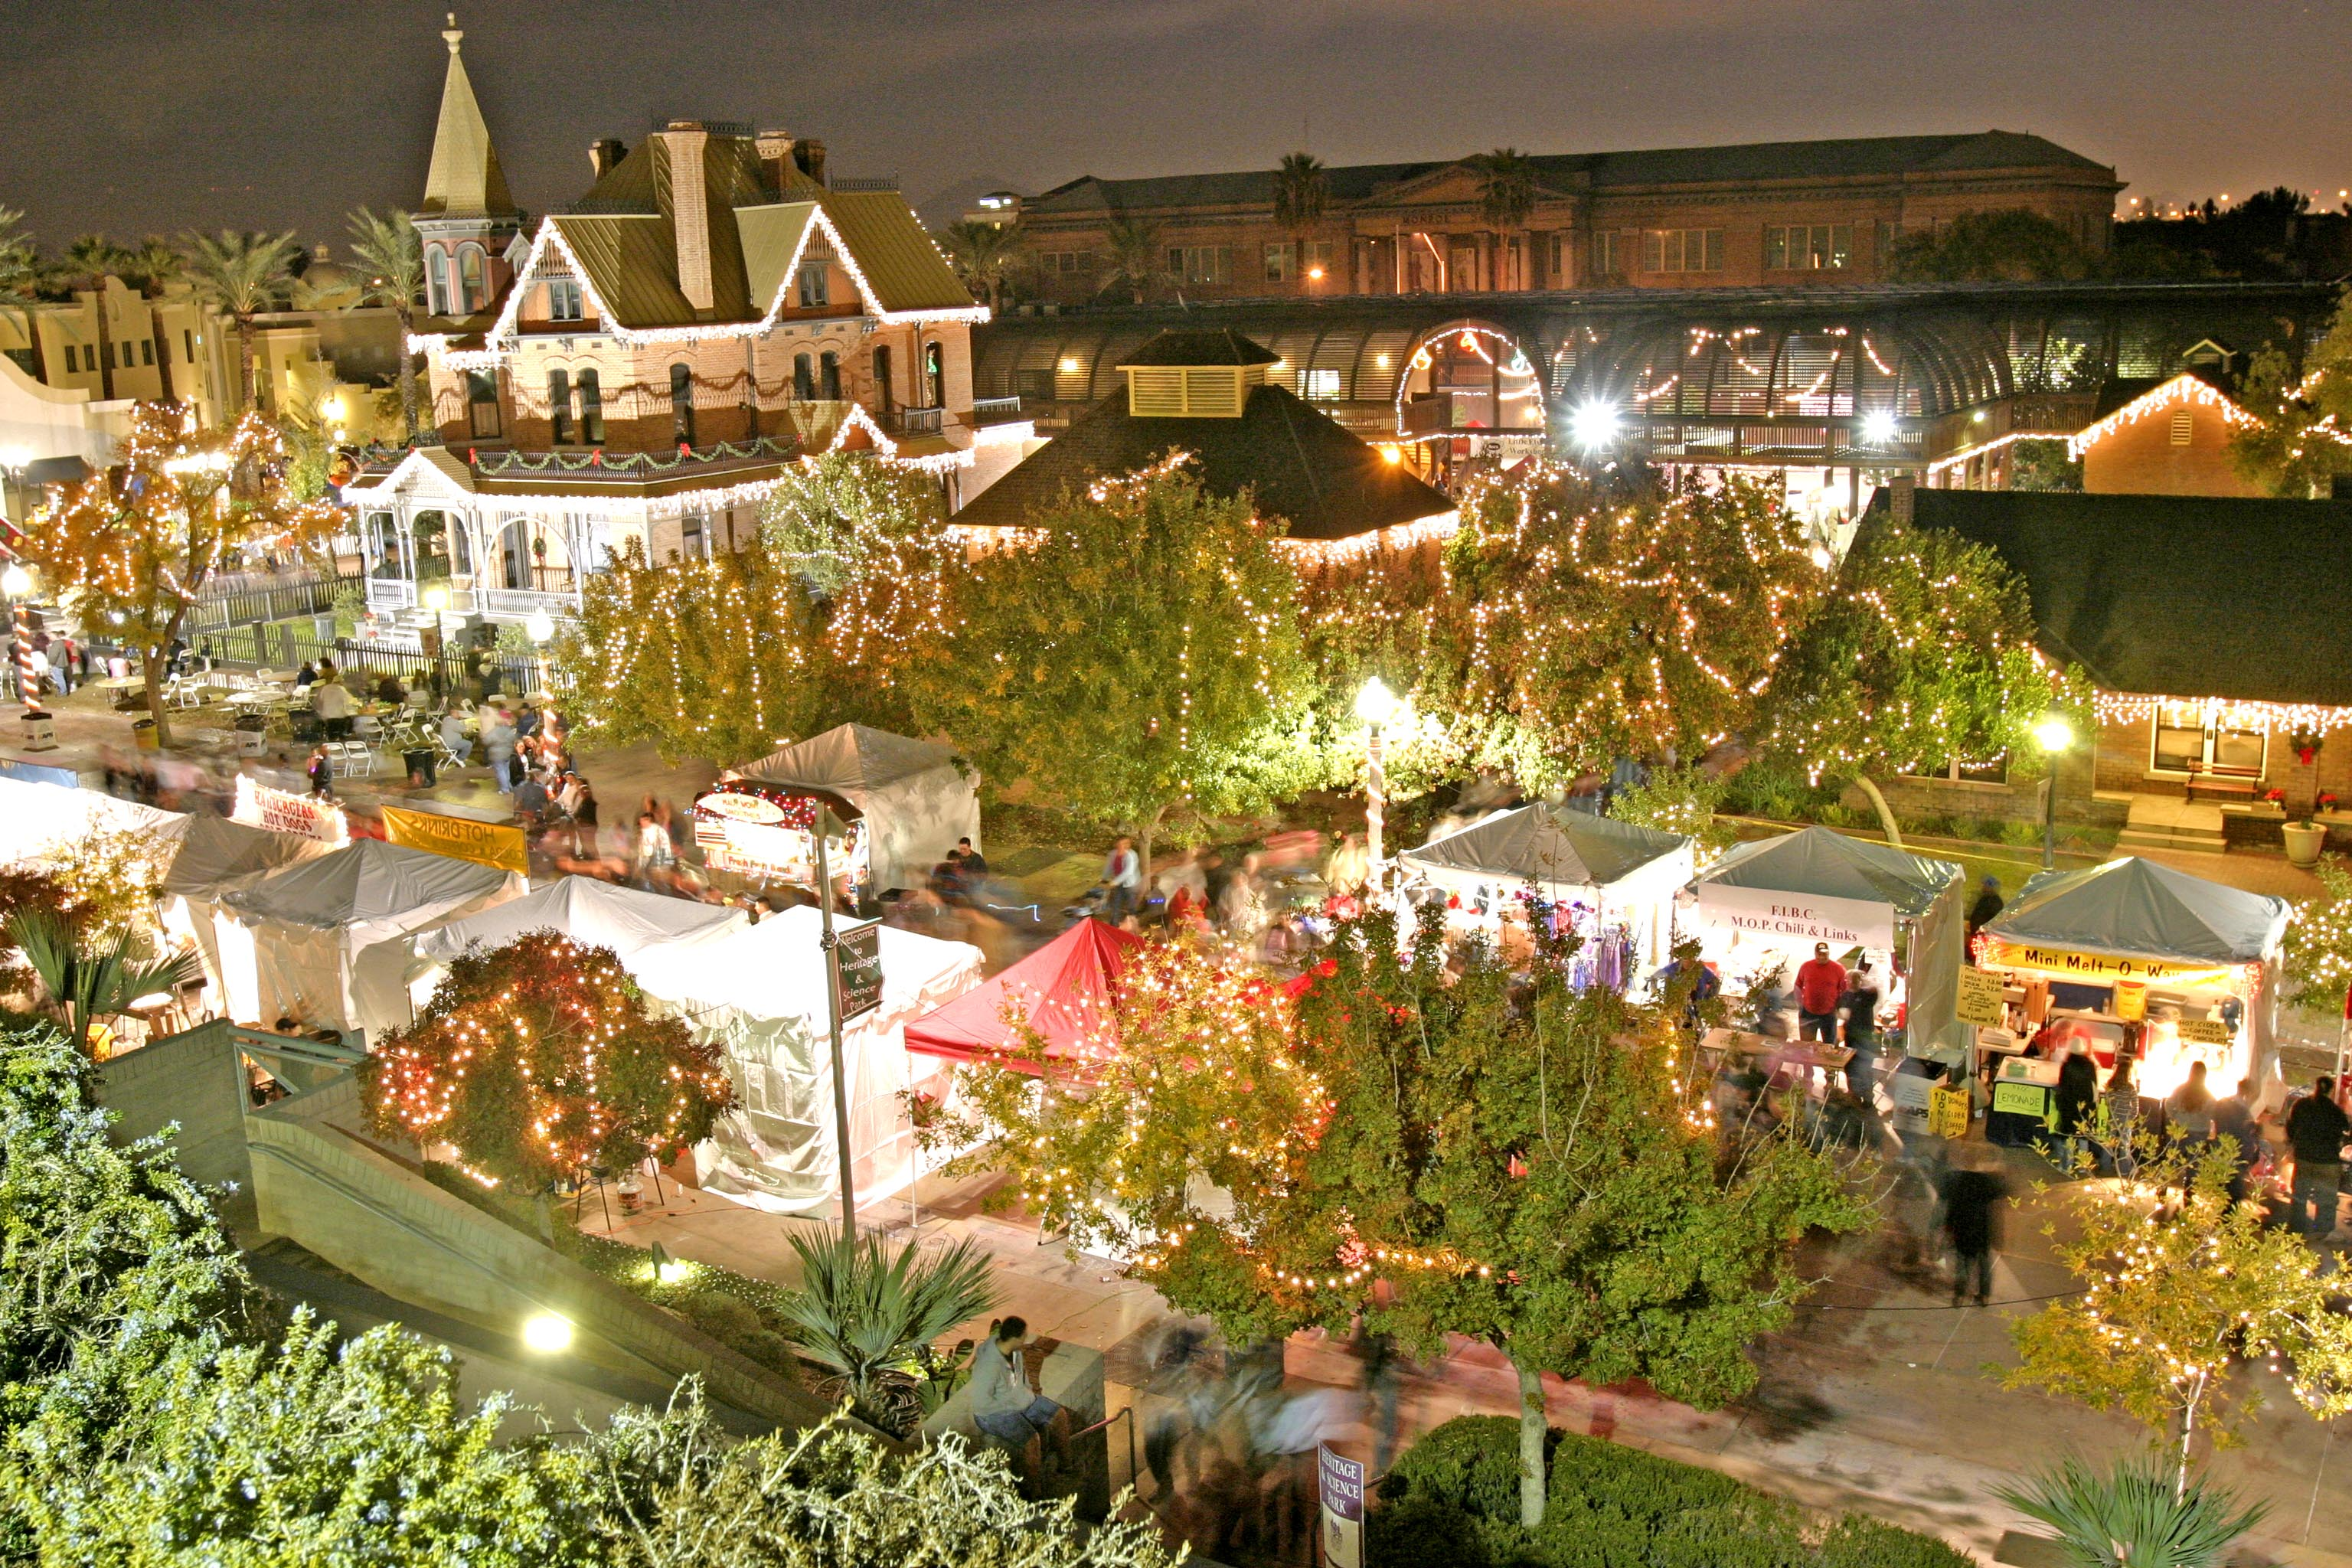 Heritage Square in Phoenix, Arizona, is illuminated with holiday decorations